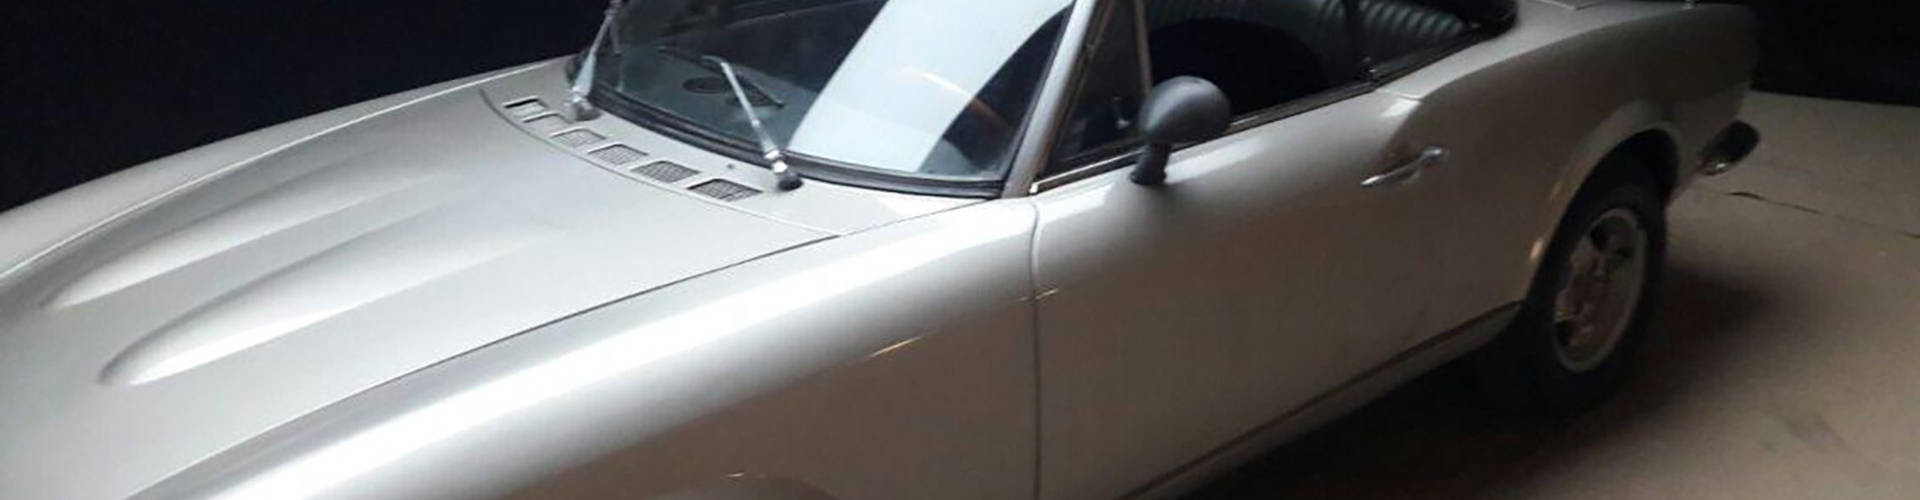 Denitto Classic Cars - We restore and sell classic cars